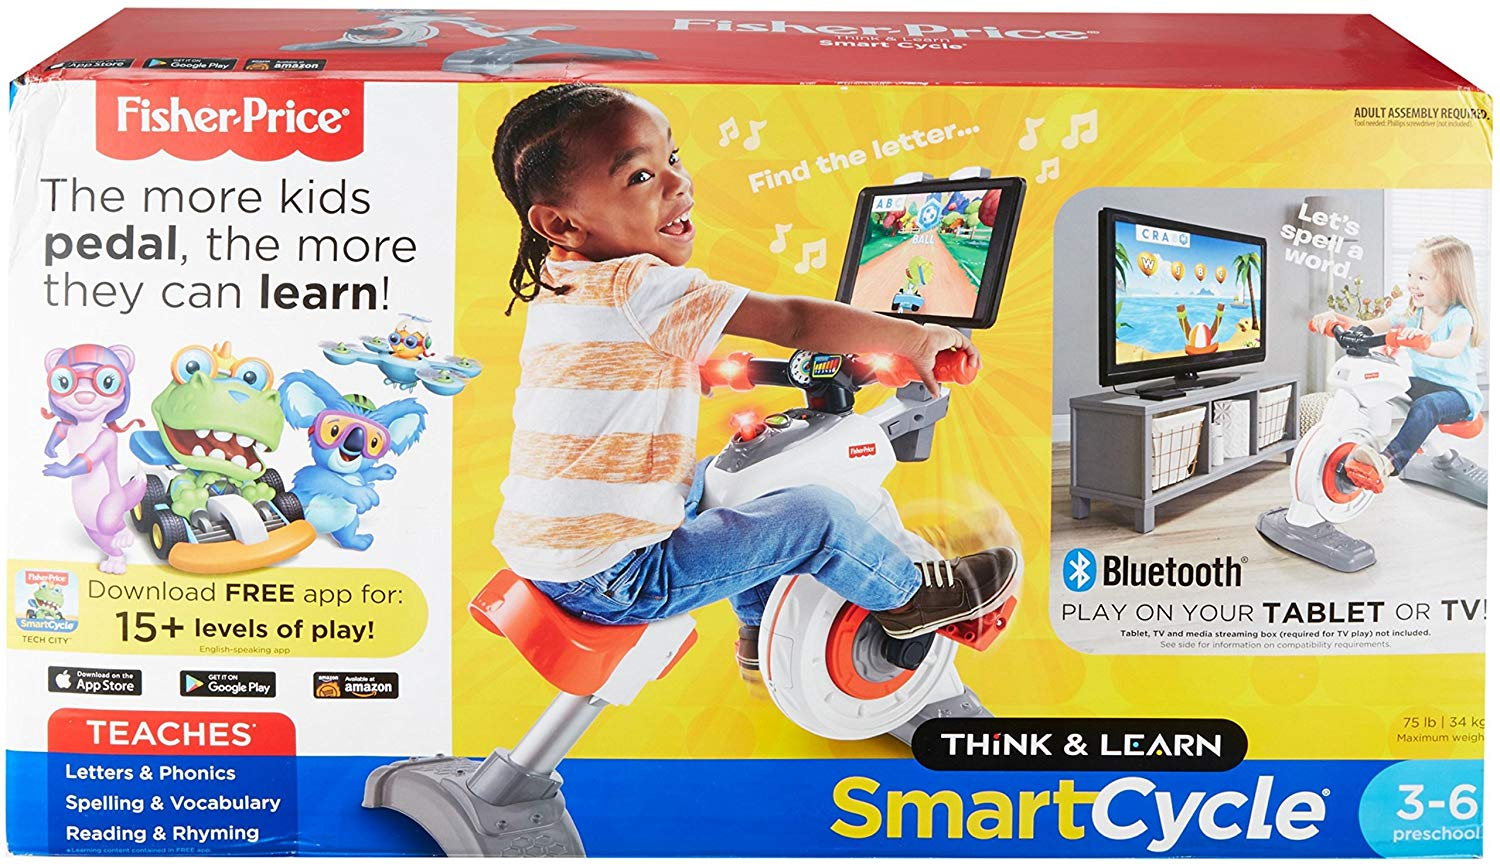 fisher-price think and learn smart cycle package